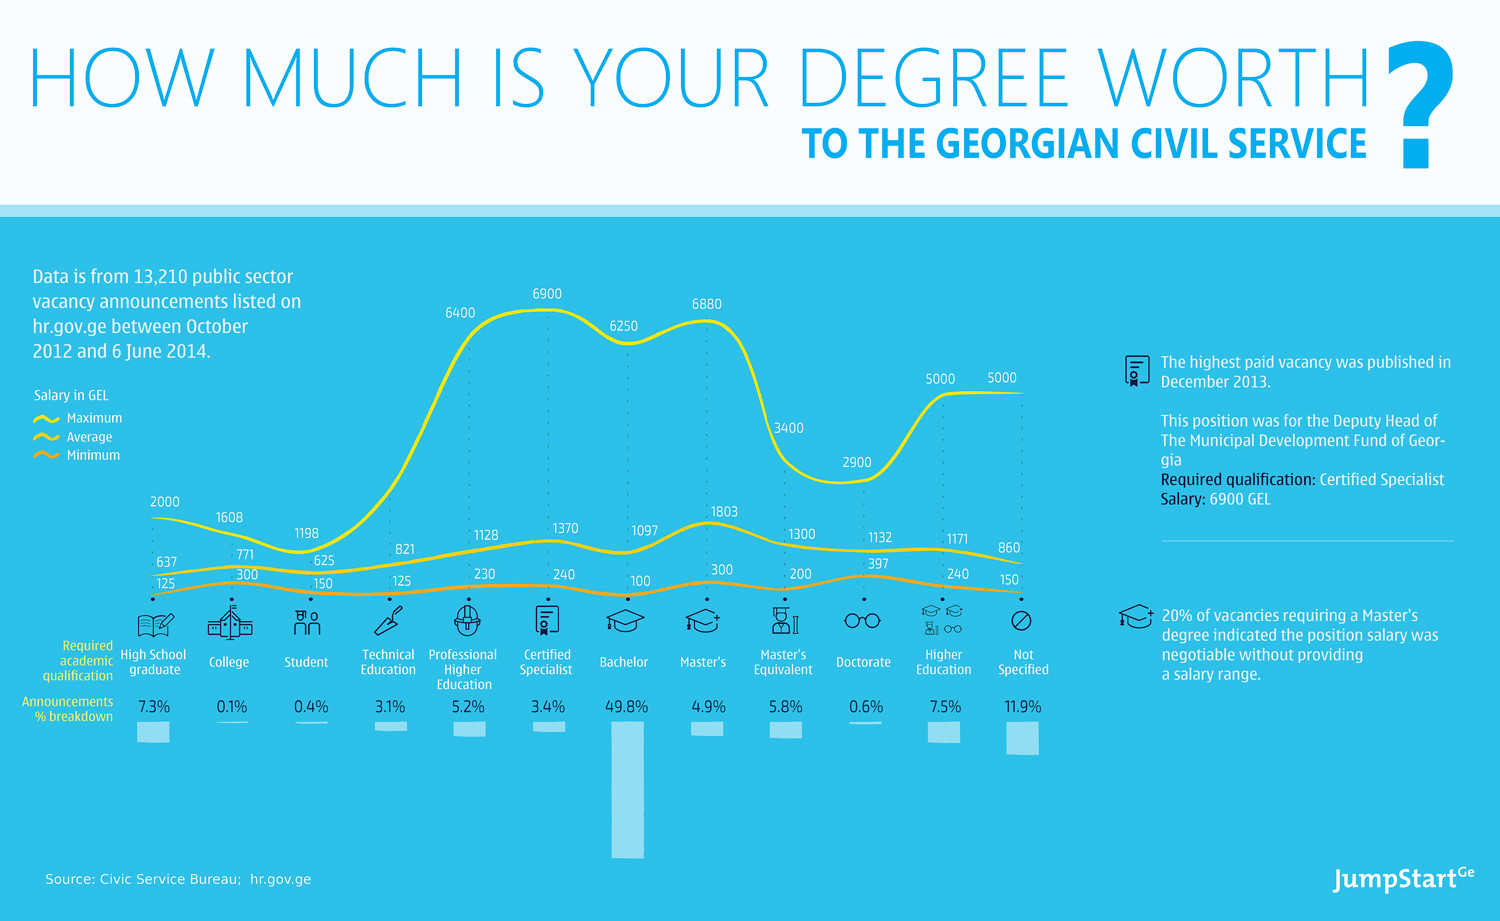 How Much is Your Degree Worth to the Georgian Civil Service? Infographic